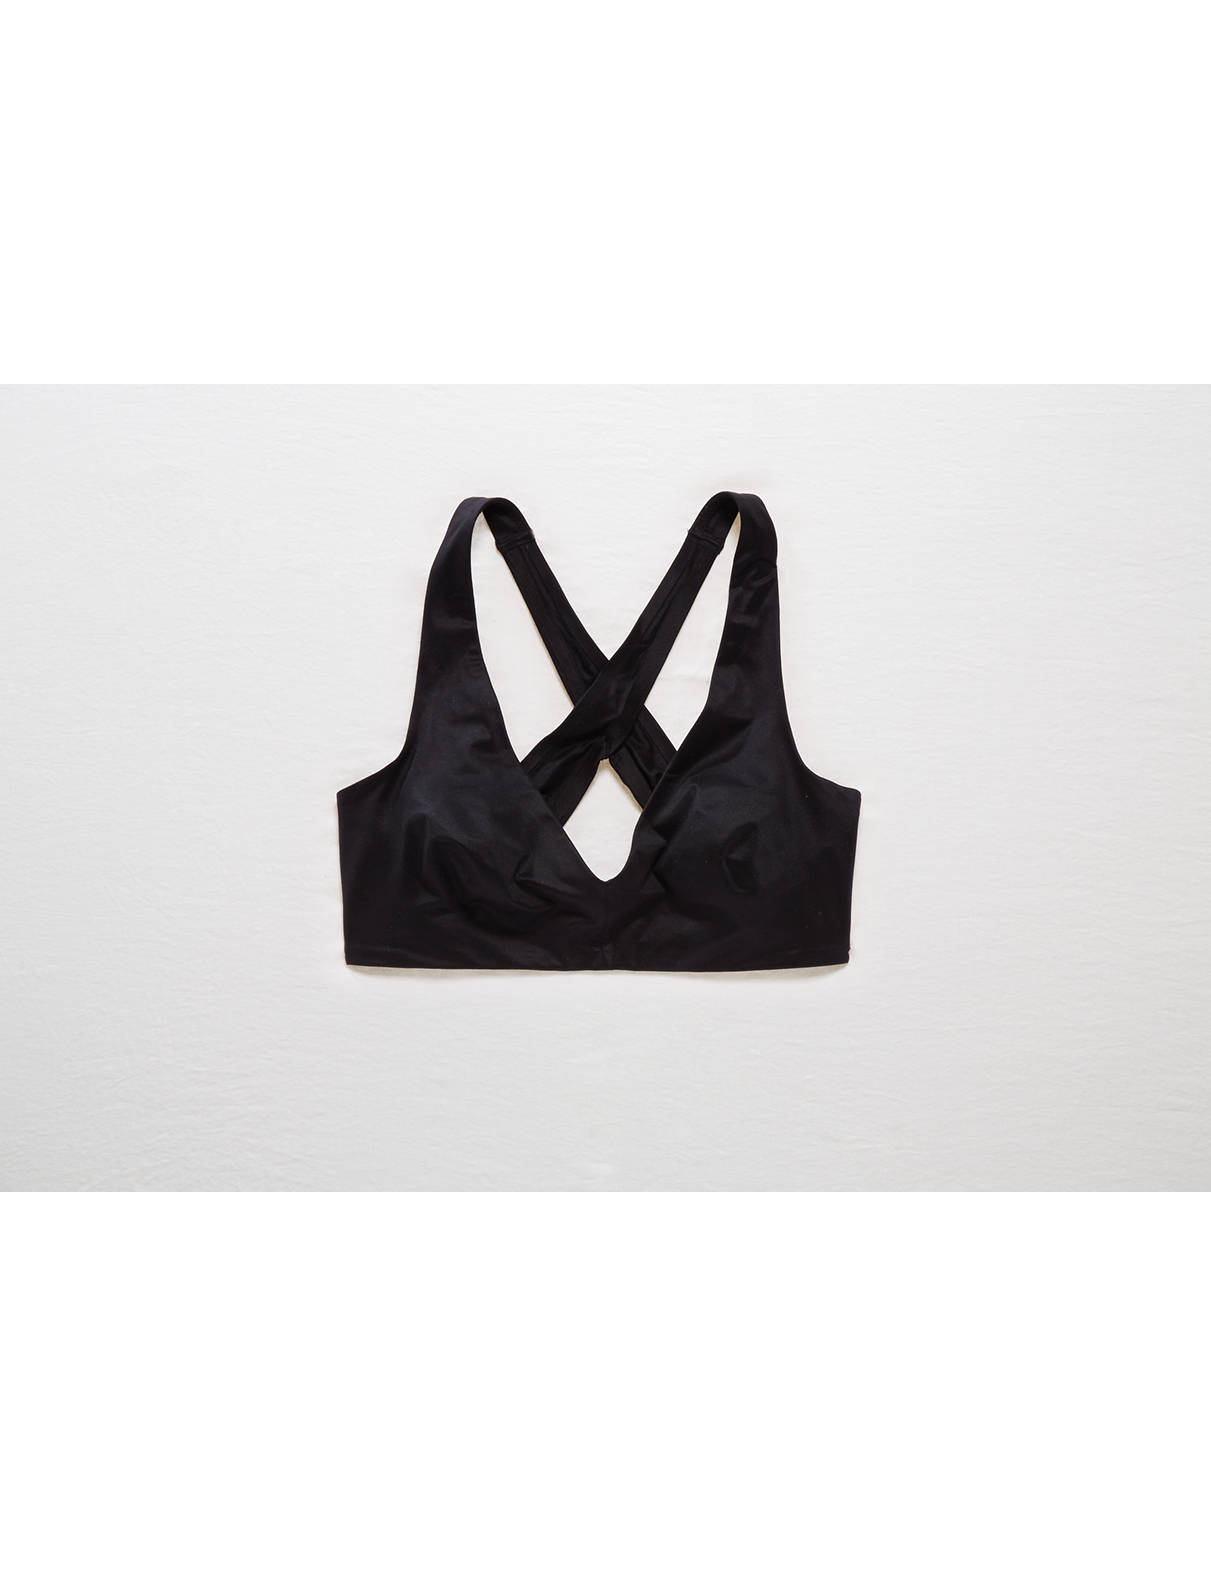 7eb2aed82dba8 Display product reviews for Aerie Sunnie Chill Sports Bra